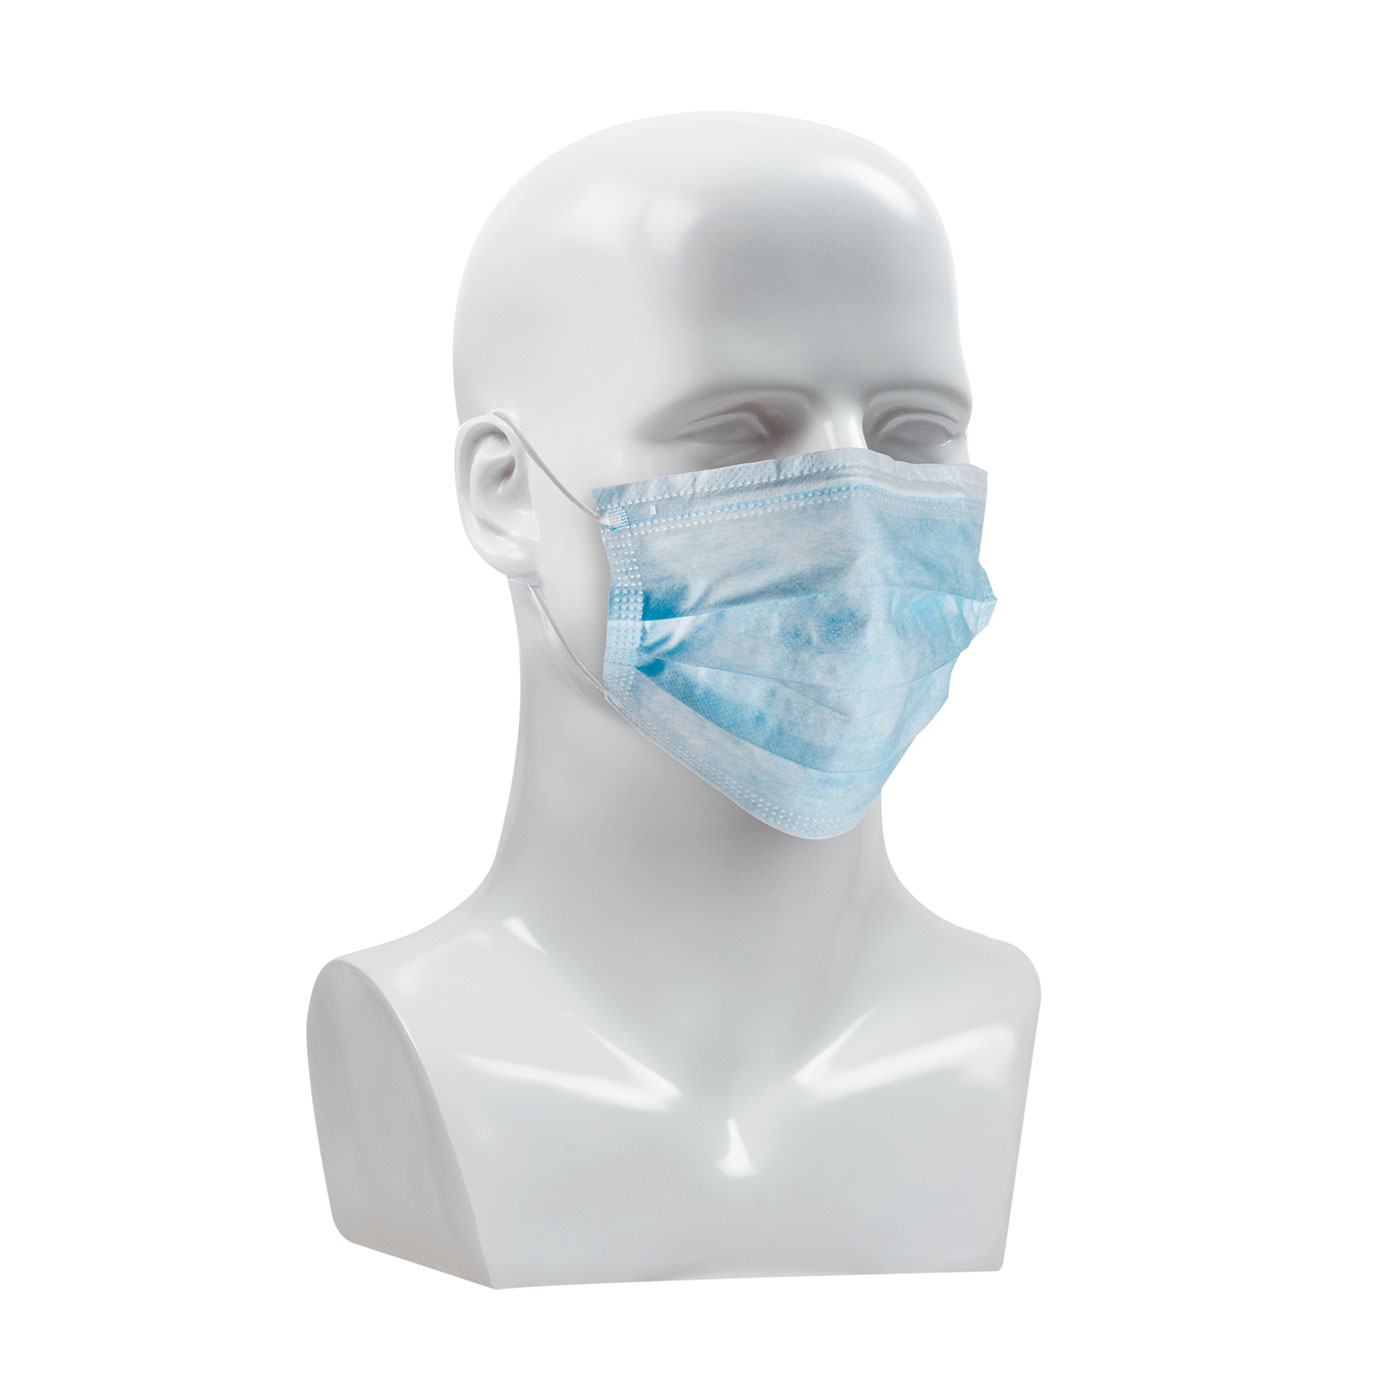 Protective Industrial Products 270-4000 Disposable Face Mask - 50 Pack